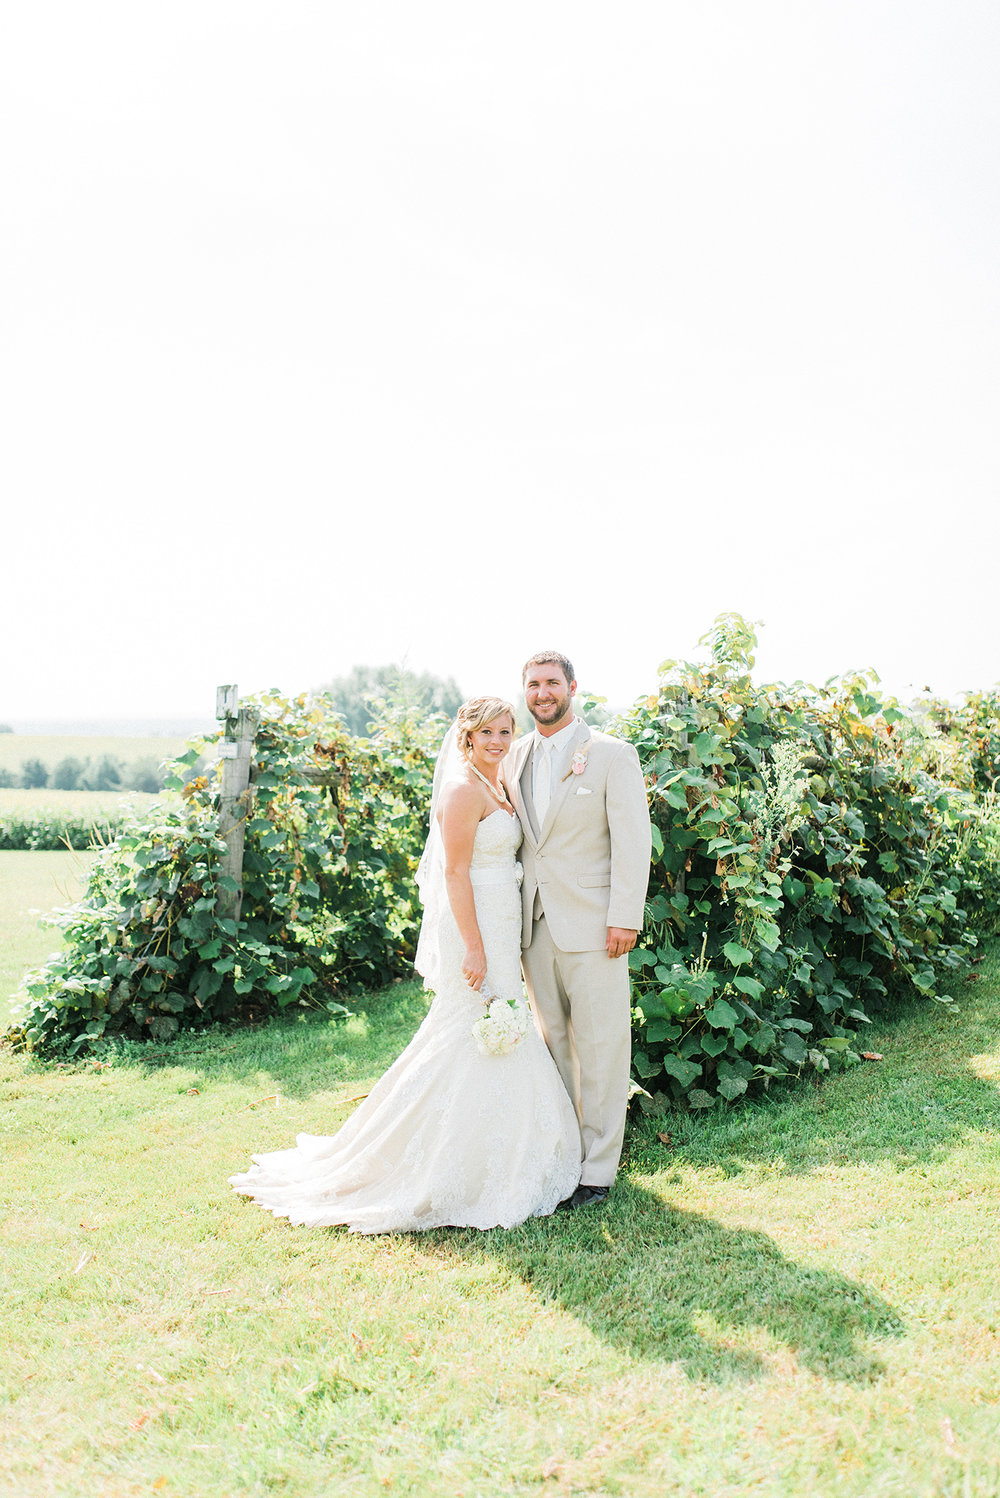 """Nicole took great pictures on my wedding day despite the heat! Wowza! I had a large family, which was overwhelming, but Nicole did a fantastic job and my picture turned out great.""  Chelsea E."